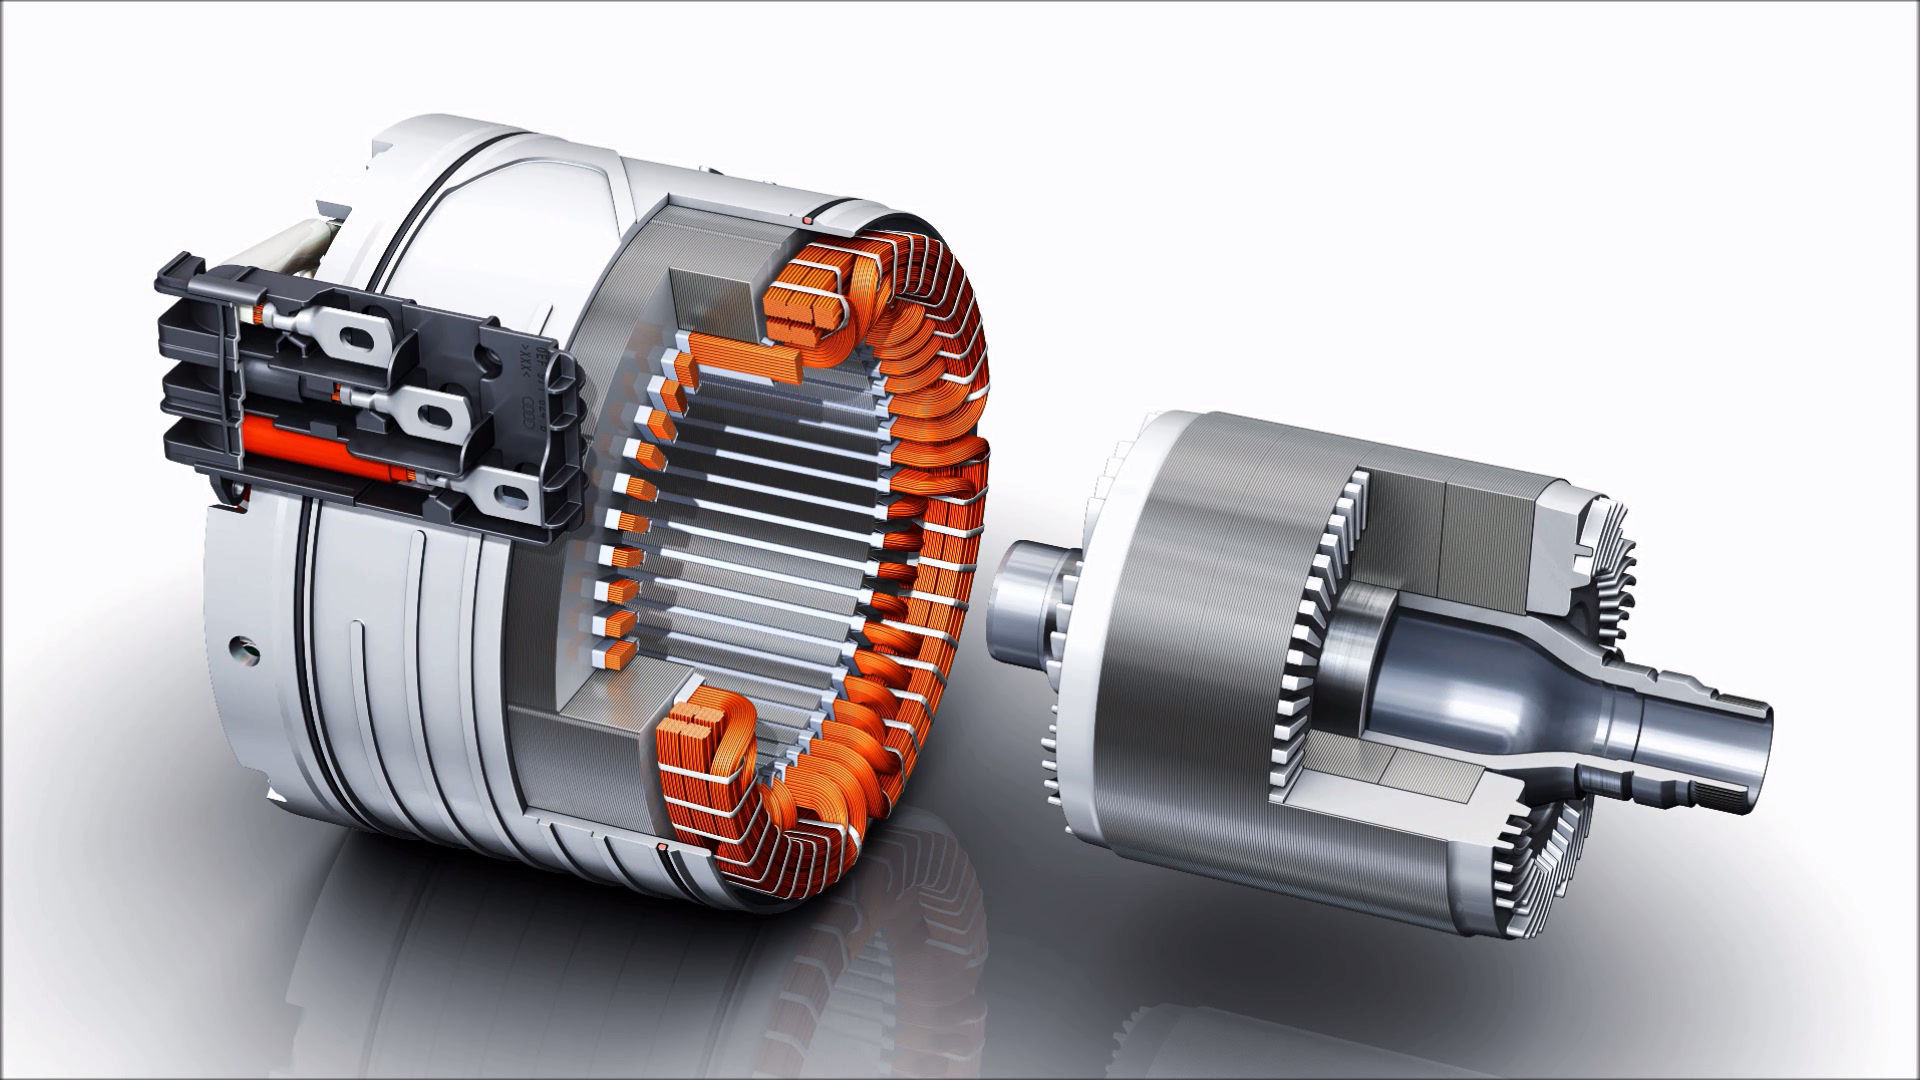 Drive System Audi Mediacenter Best Method For Controlling How A Motor Stops Maximizes Machine Asynchronous